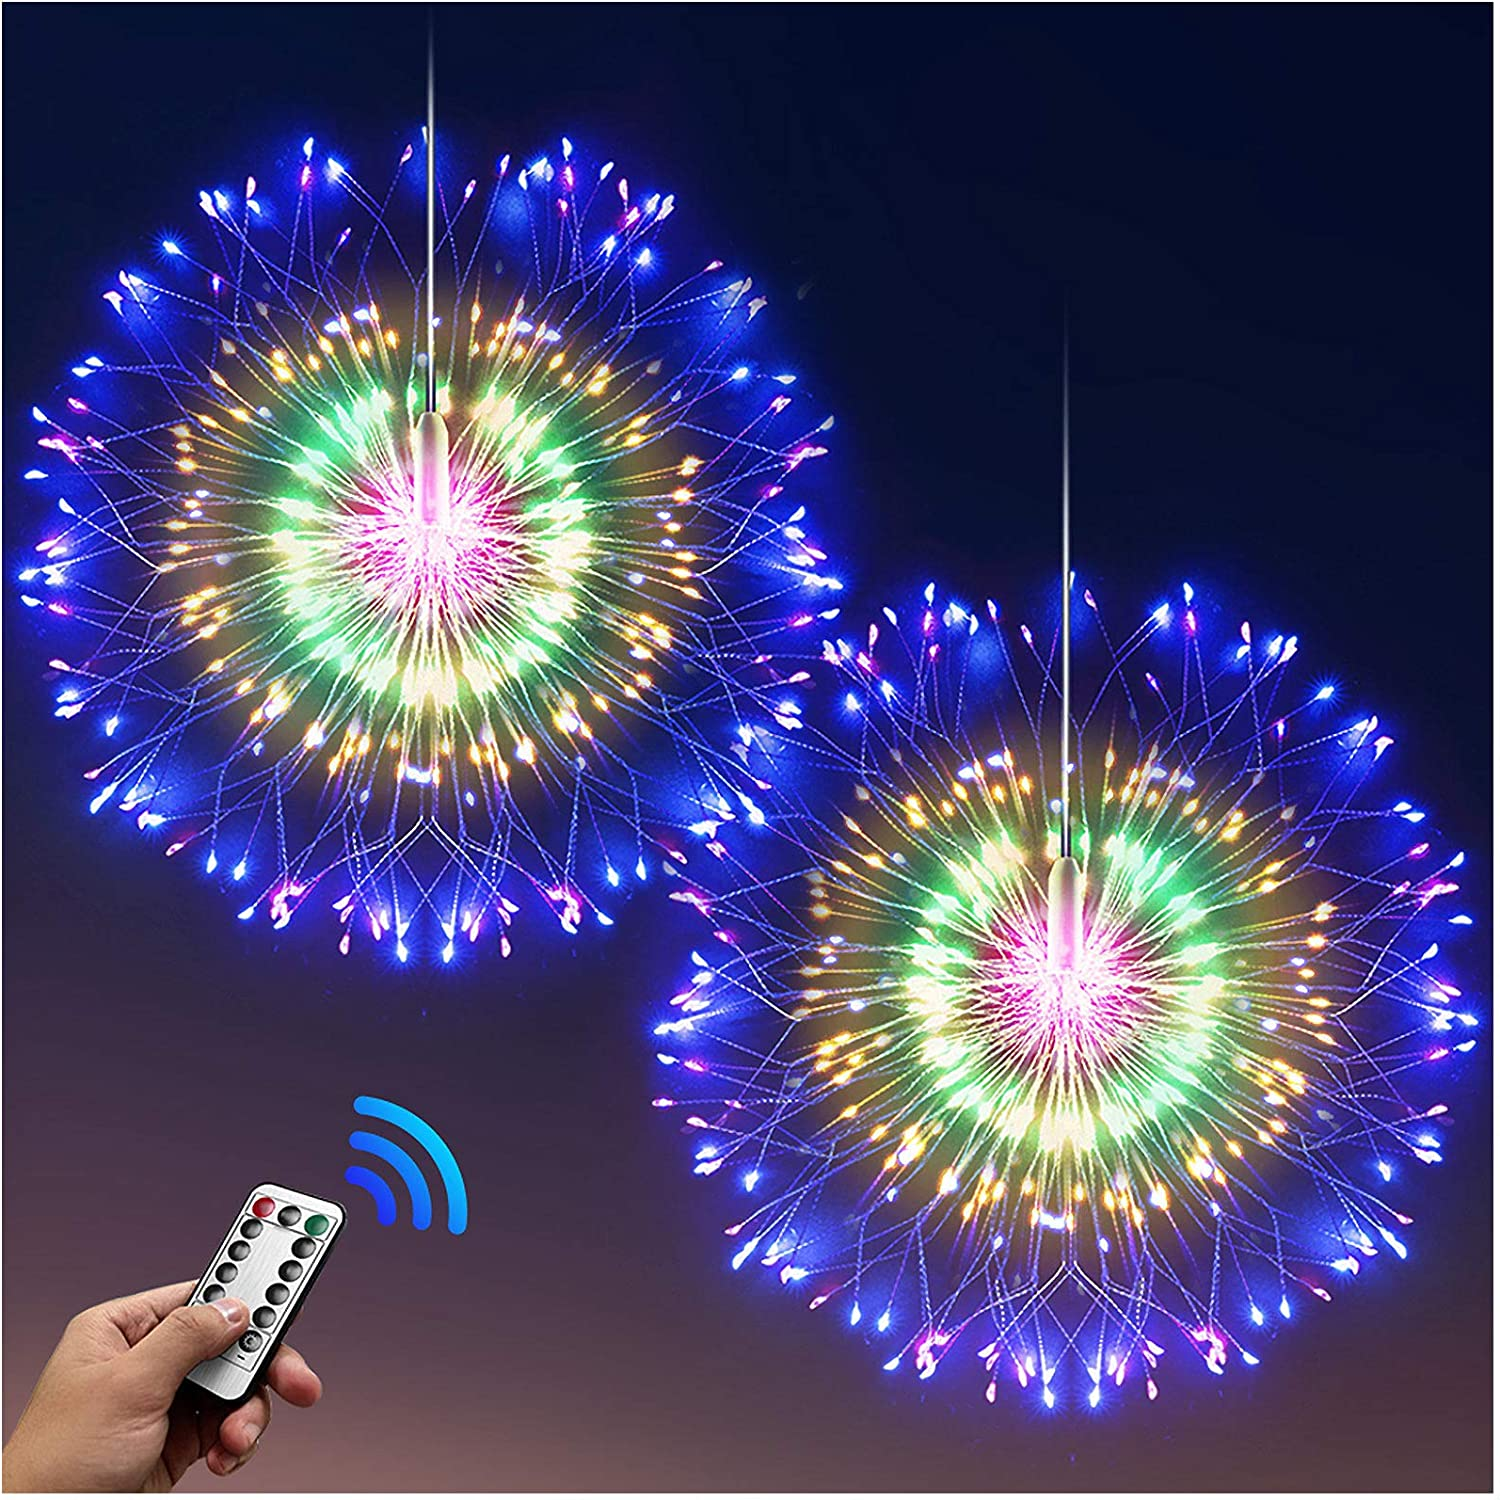 DenicMic Firework Lights Starburst Lights 200 LED Copper Wire Battery Operated Hanging Sphere Lights with Remote, 8 Modes Stars Fairy Ceiling Decorations for Patio Party Wedding Christmas (2 Pack)